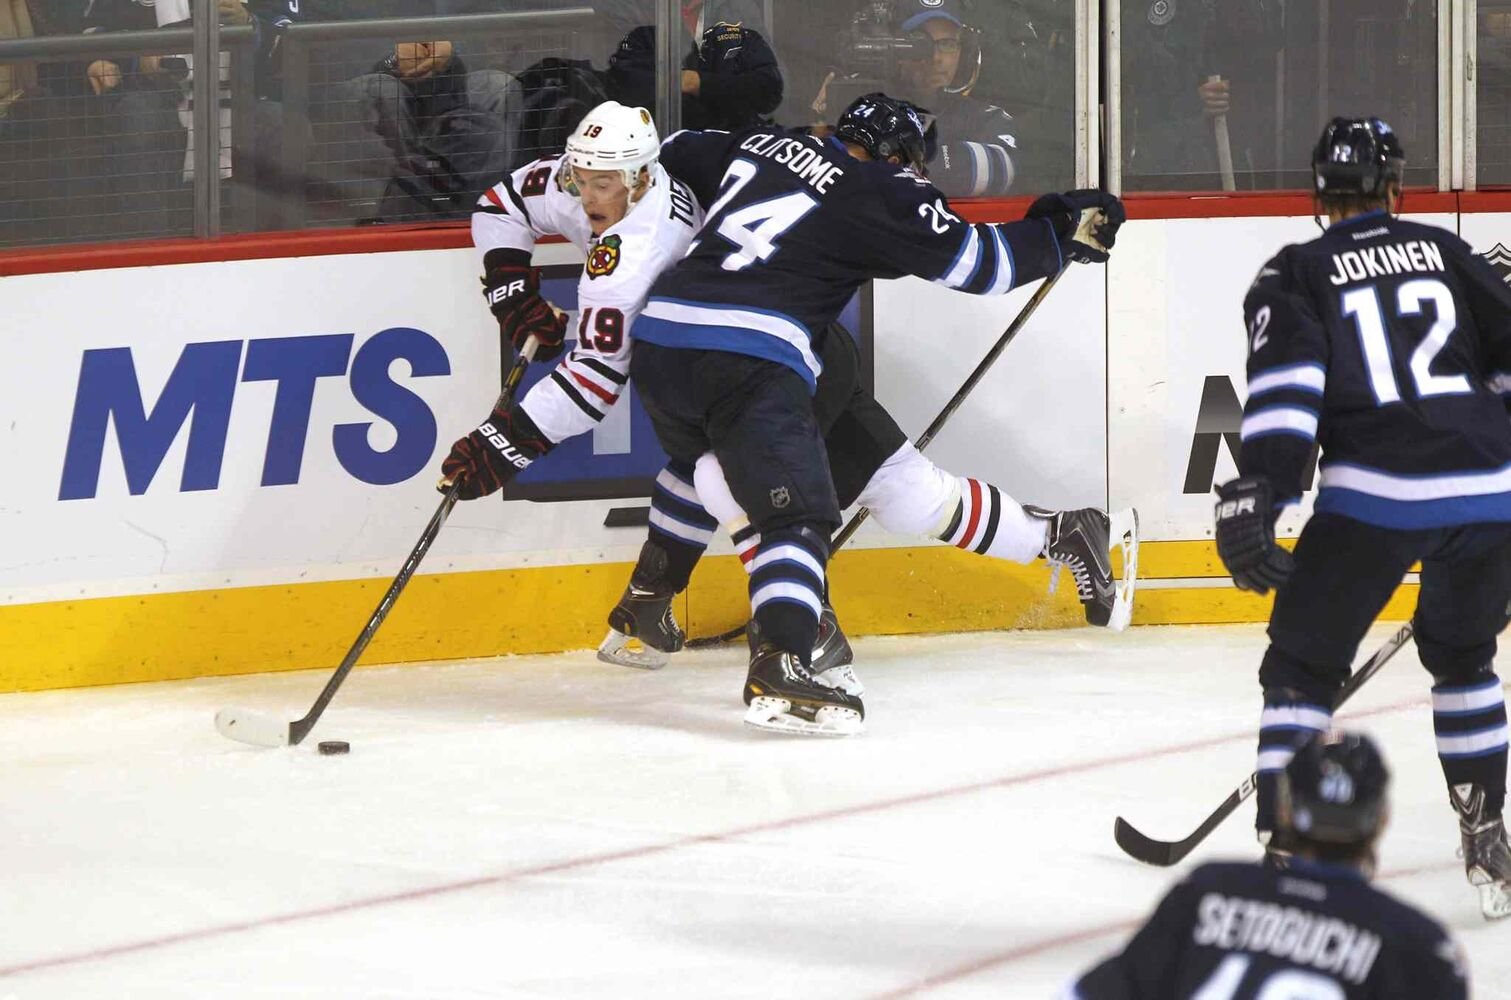 Grant Clitsome (24) checks Jonathan Toews (left) as Olli Jokinen (12) looks on during the third  period. (Ruth Bonneville / Winnipeg Free Press)